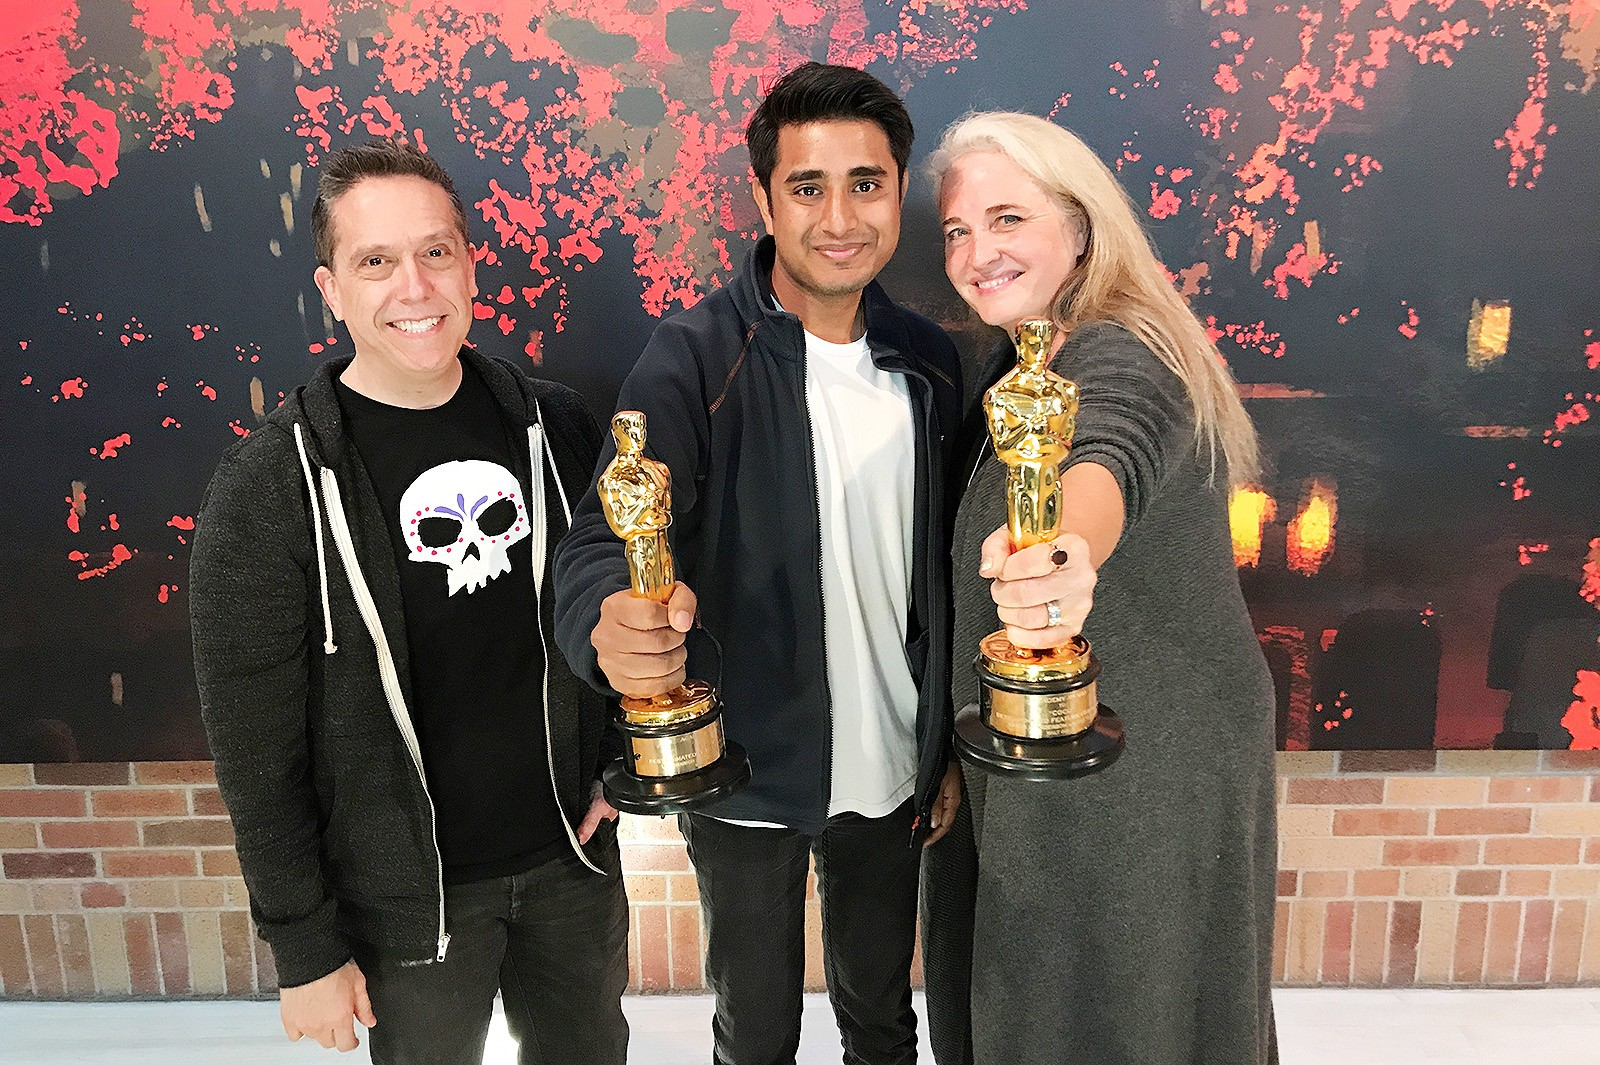 Mr Harsh Agrawal, a graduate of the School of Creative Media, was a member of the animation team for the film Coco, which won the Oscar for Best Animated Feature this year.